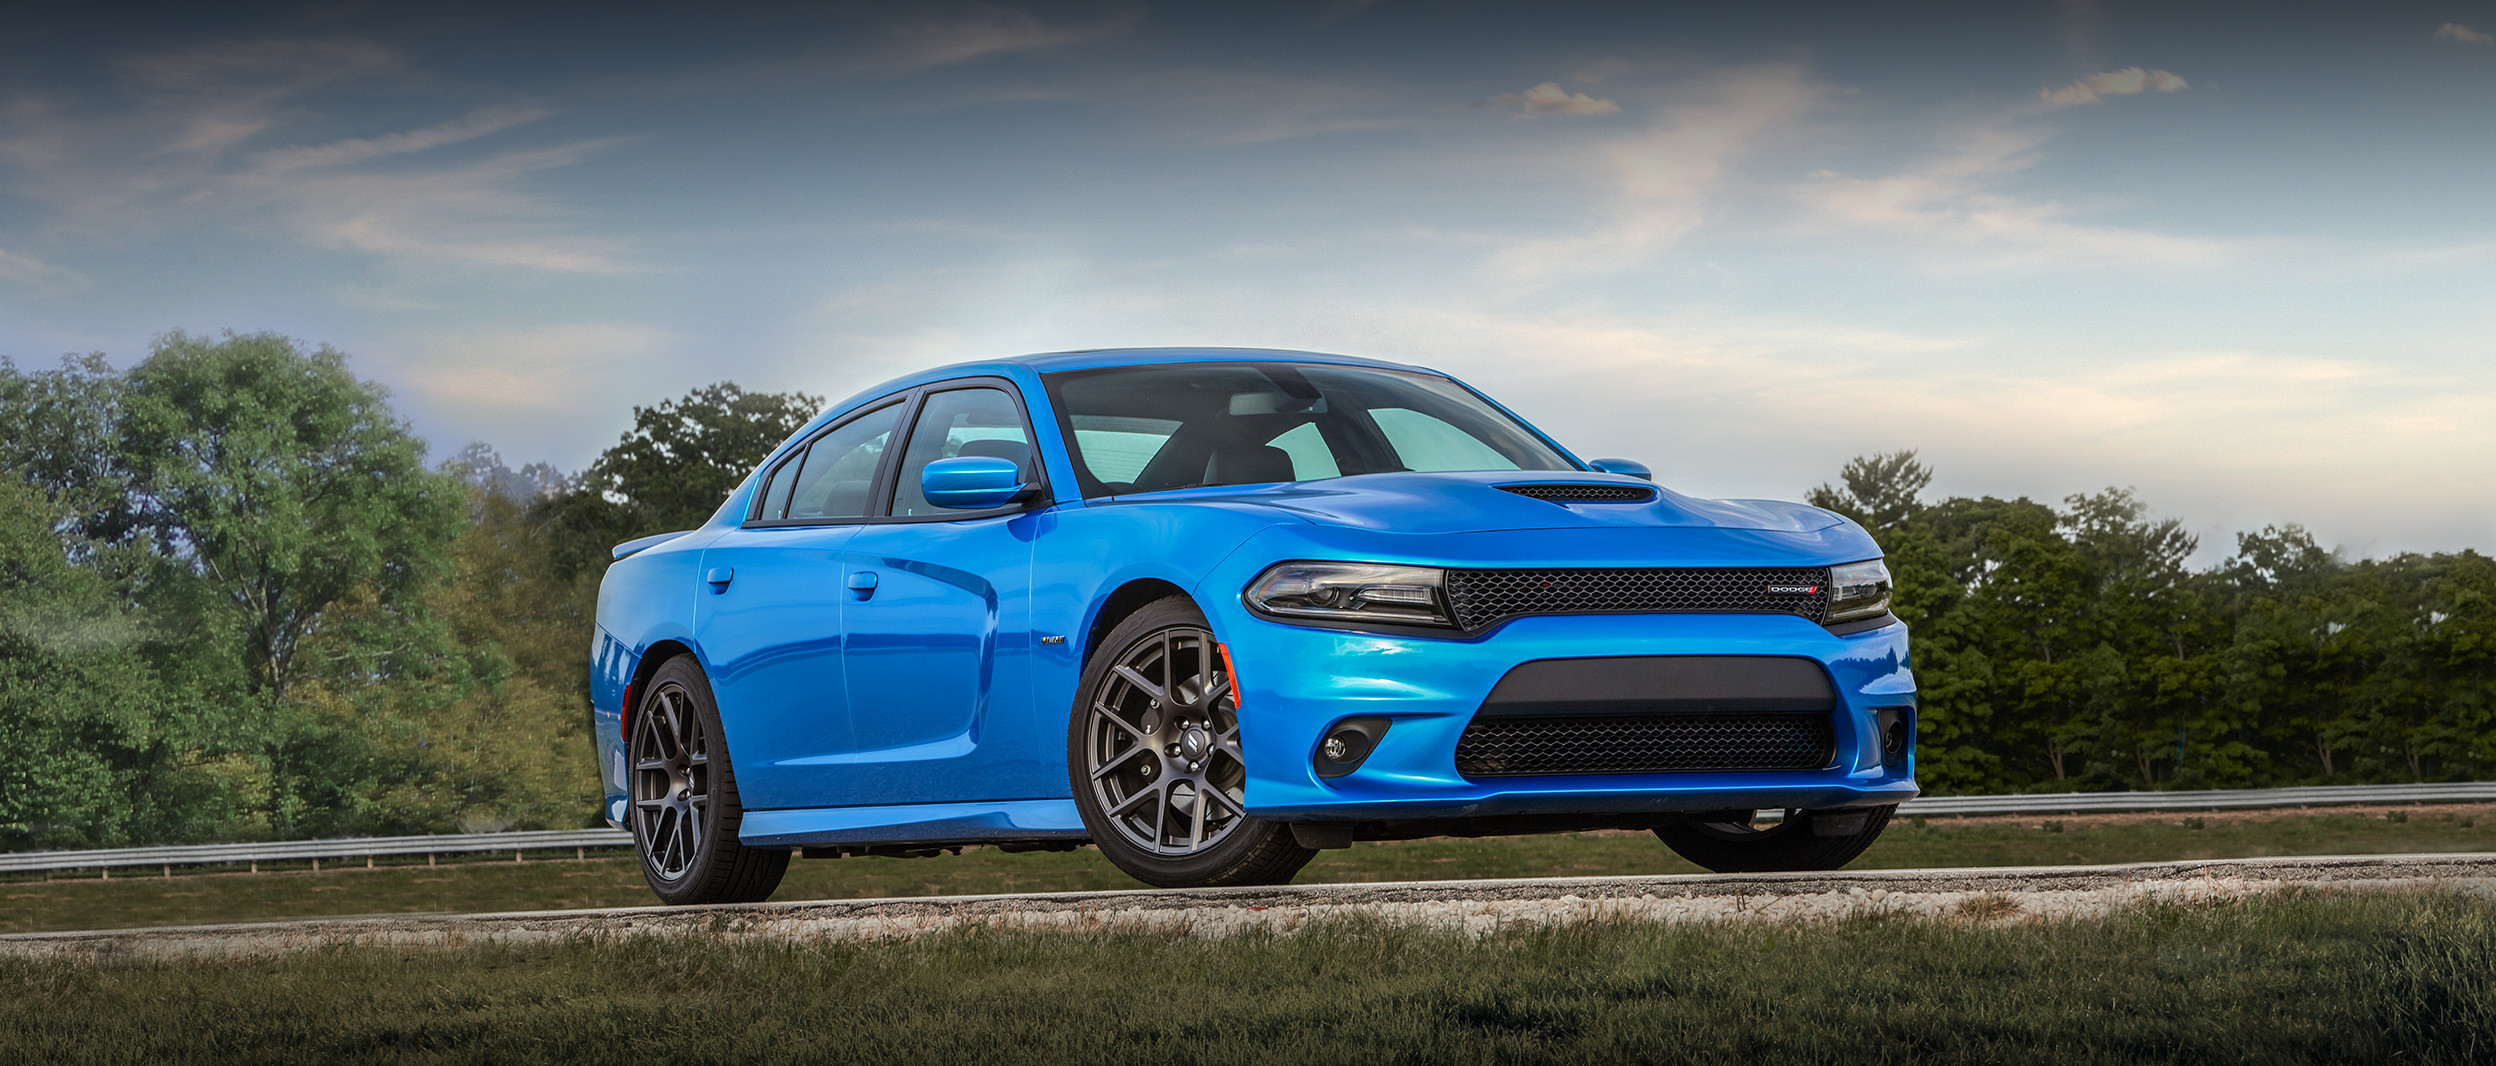 Blue Dodge Charger | Top New Car Release Date